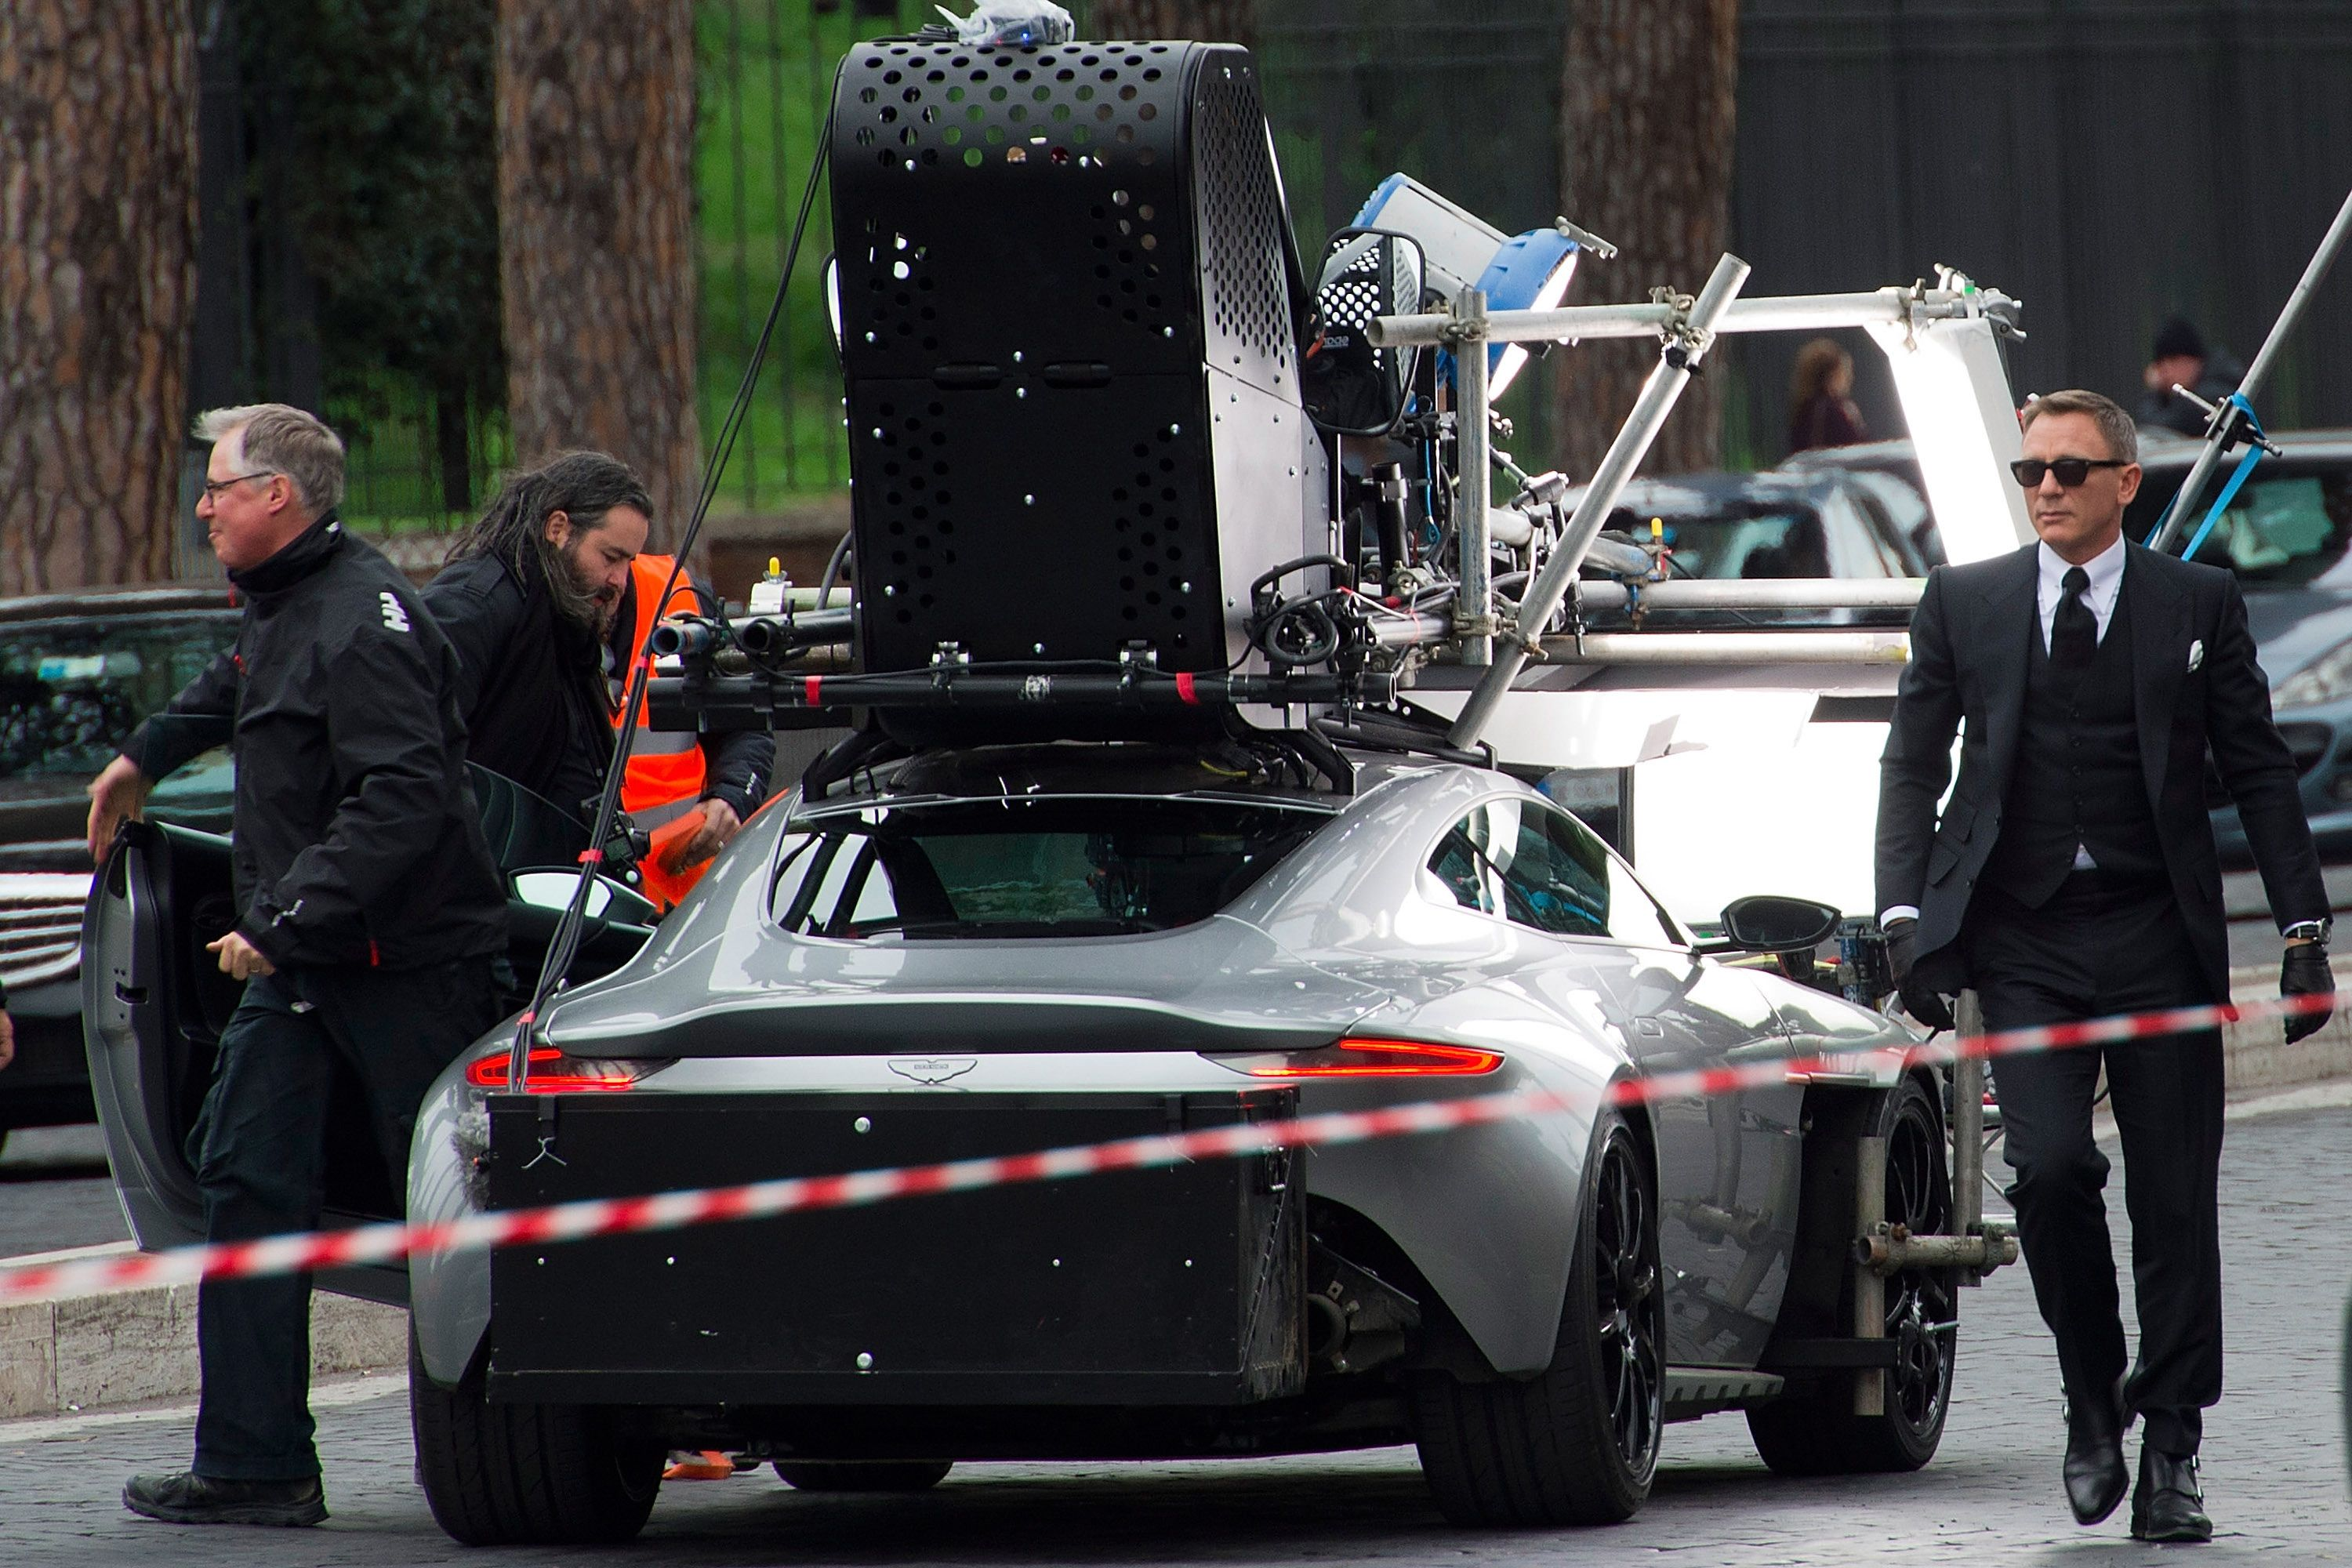 bond behind the scenes: spectre's movie cars hit rome